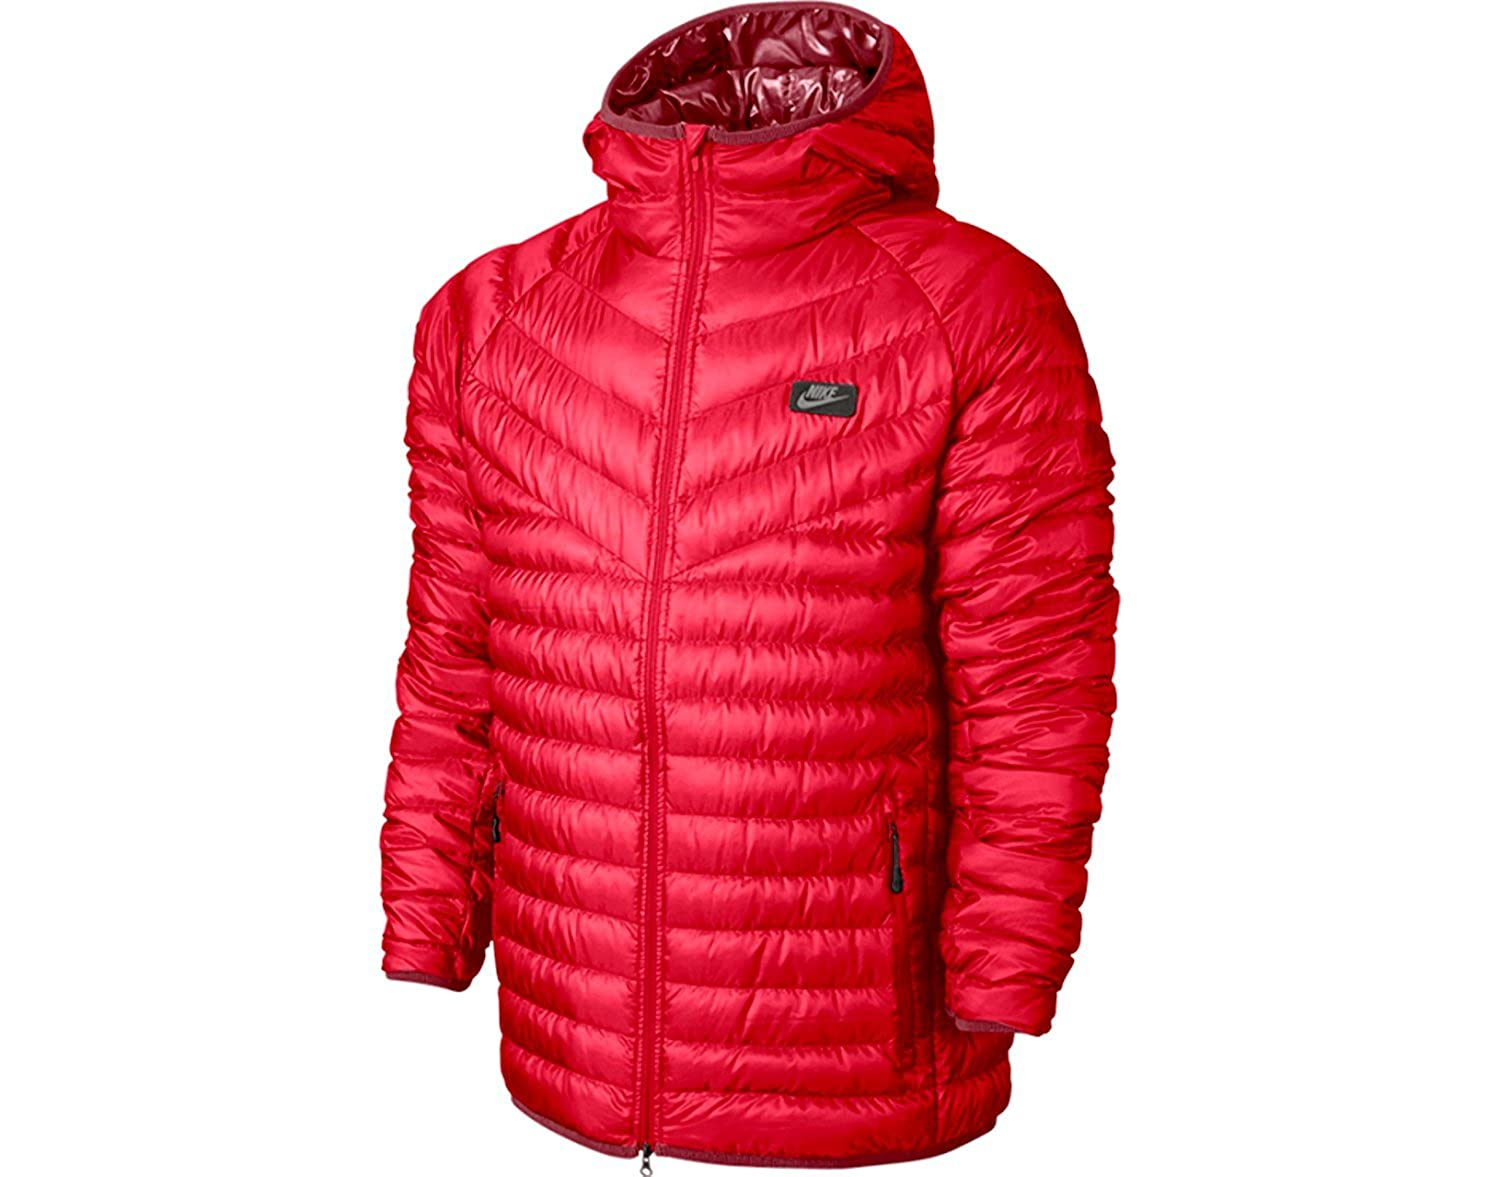 e43697b02a77 Nike Men s Guild 550 Down Hooded Jacket Lightweight Packable (S)   Amazon.ca  Sports   Outdoors